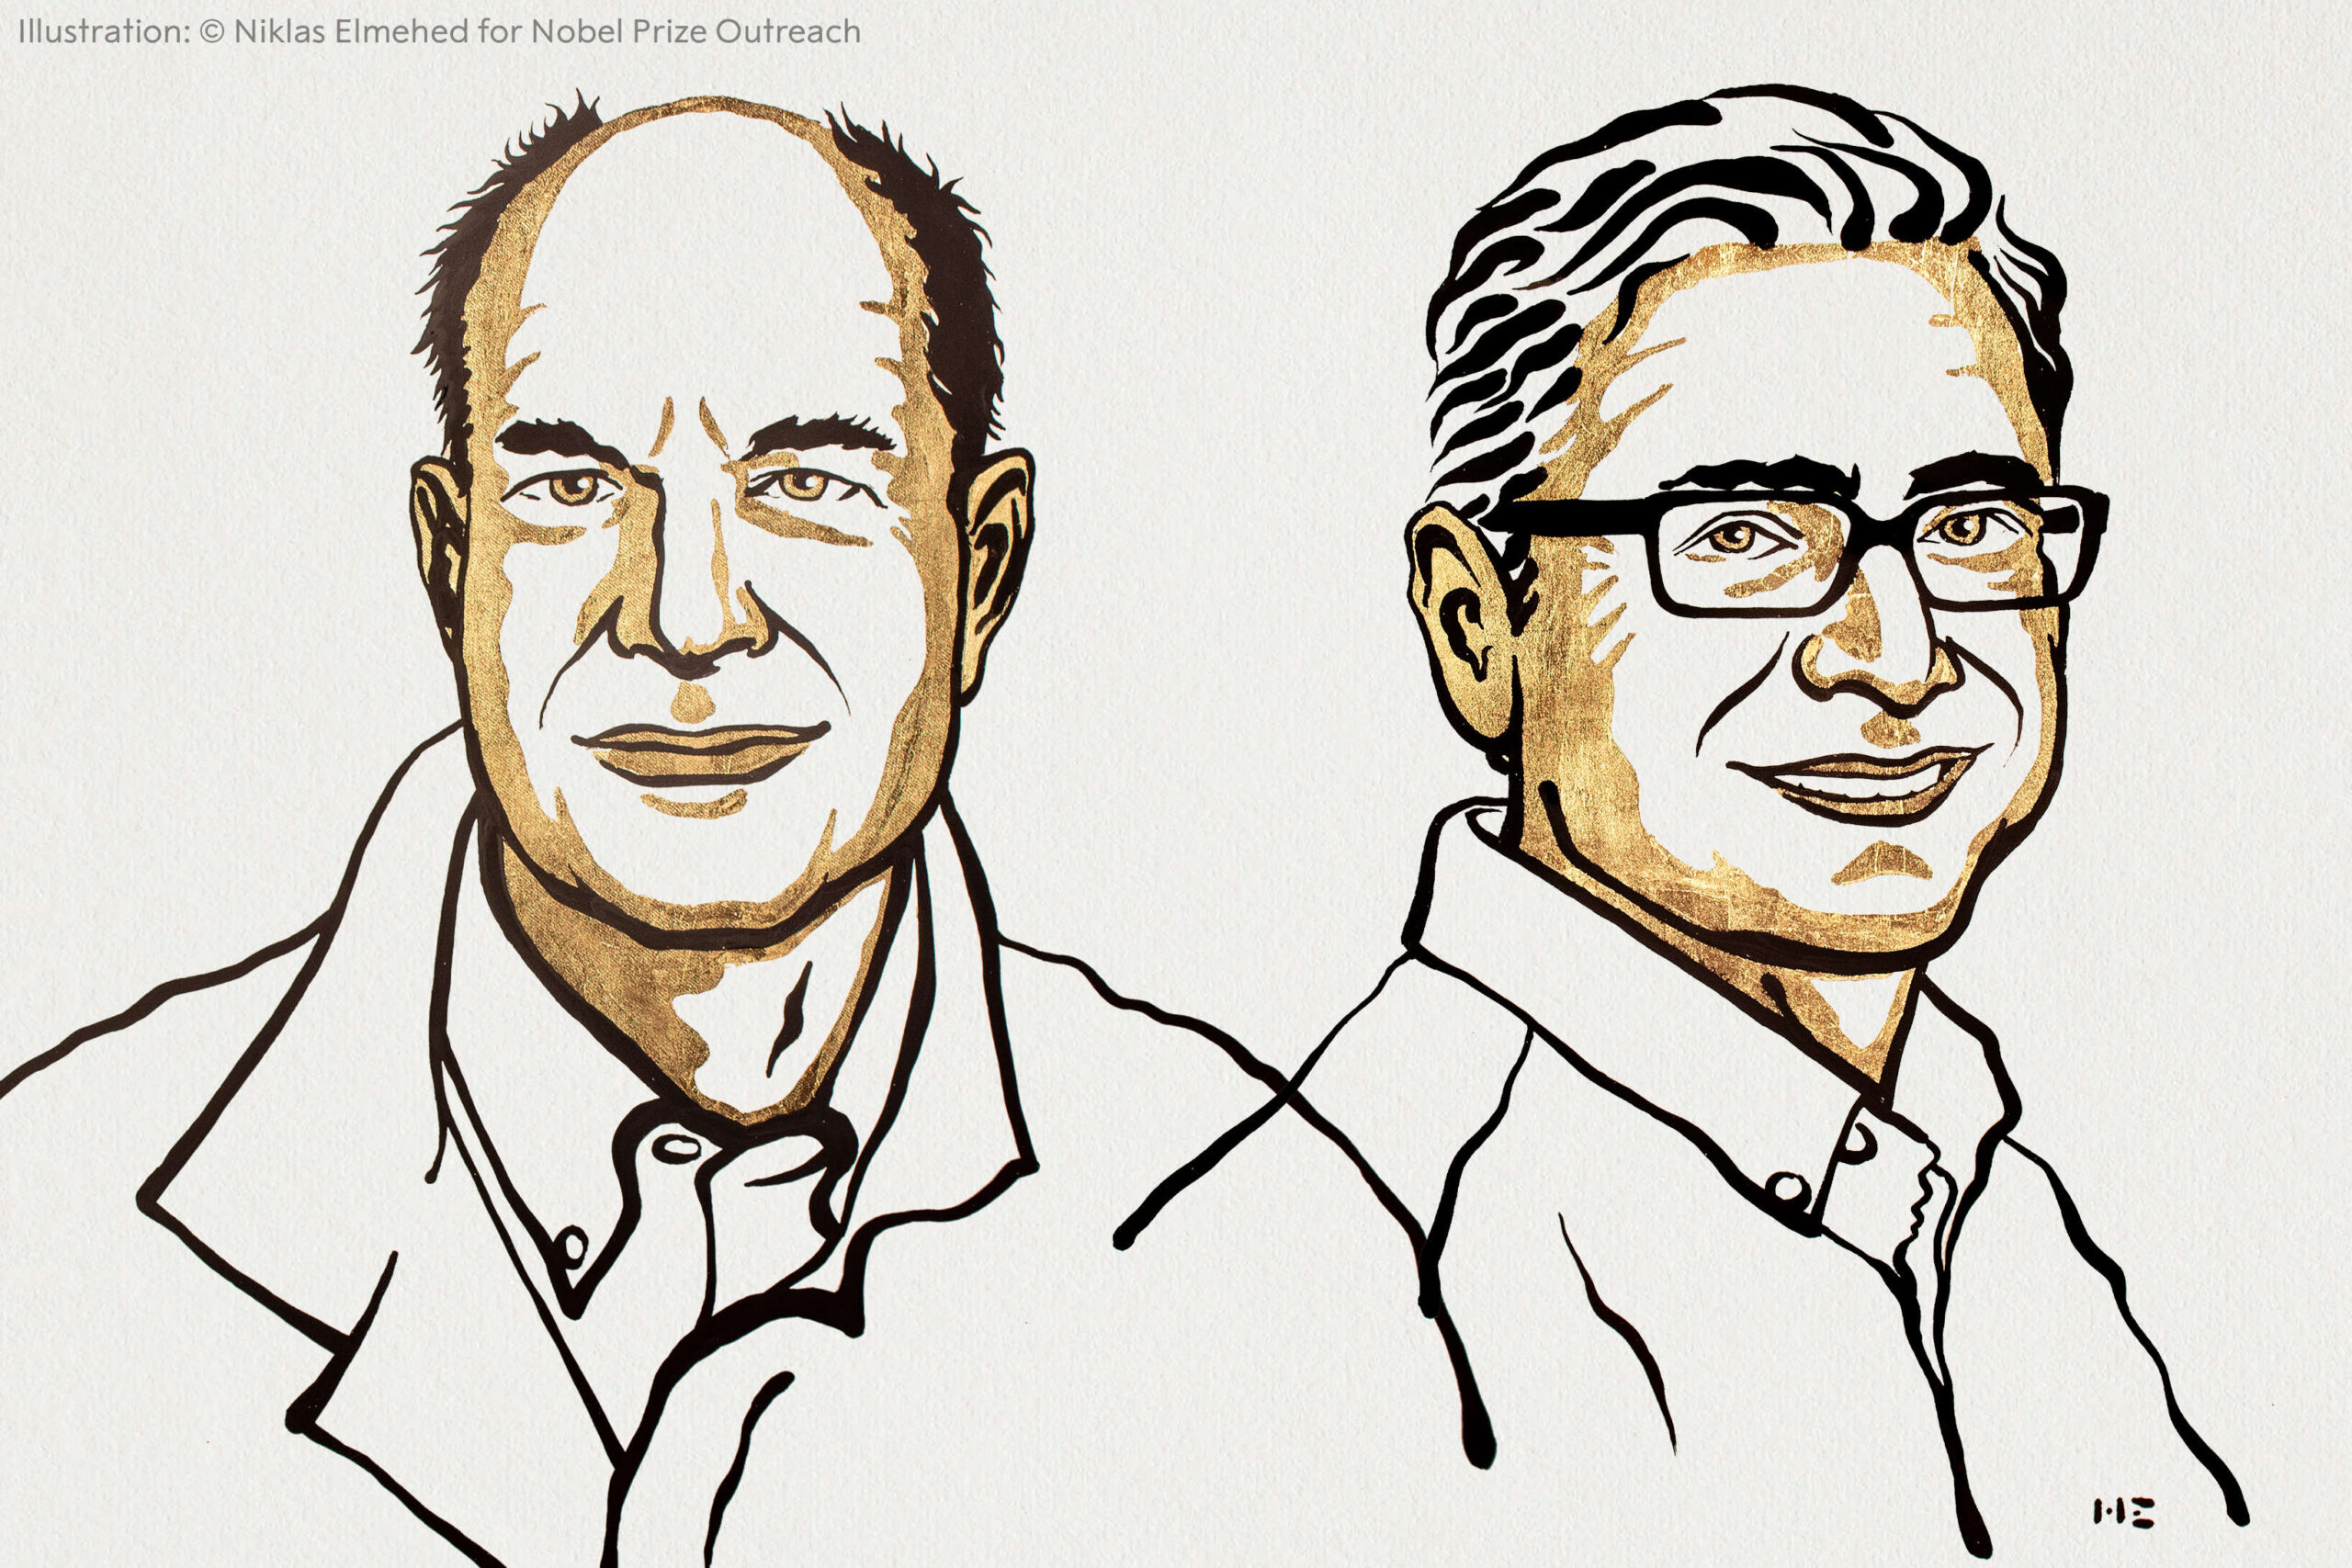 Line drawing illustration of the two Nobel prize winners, Julius and Patapoutian